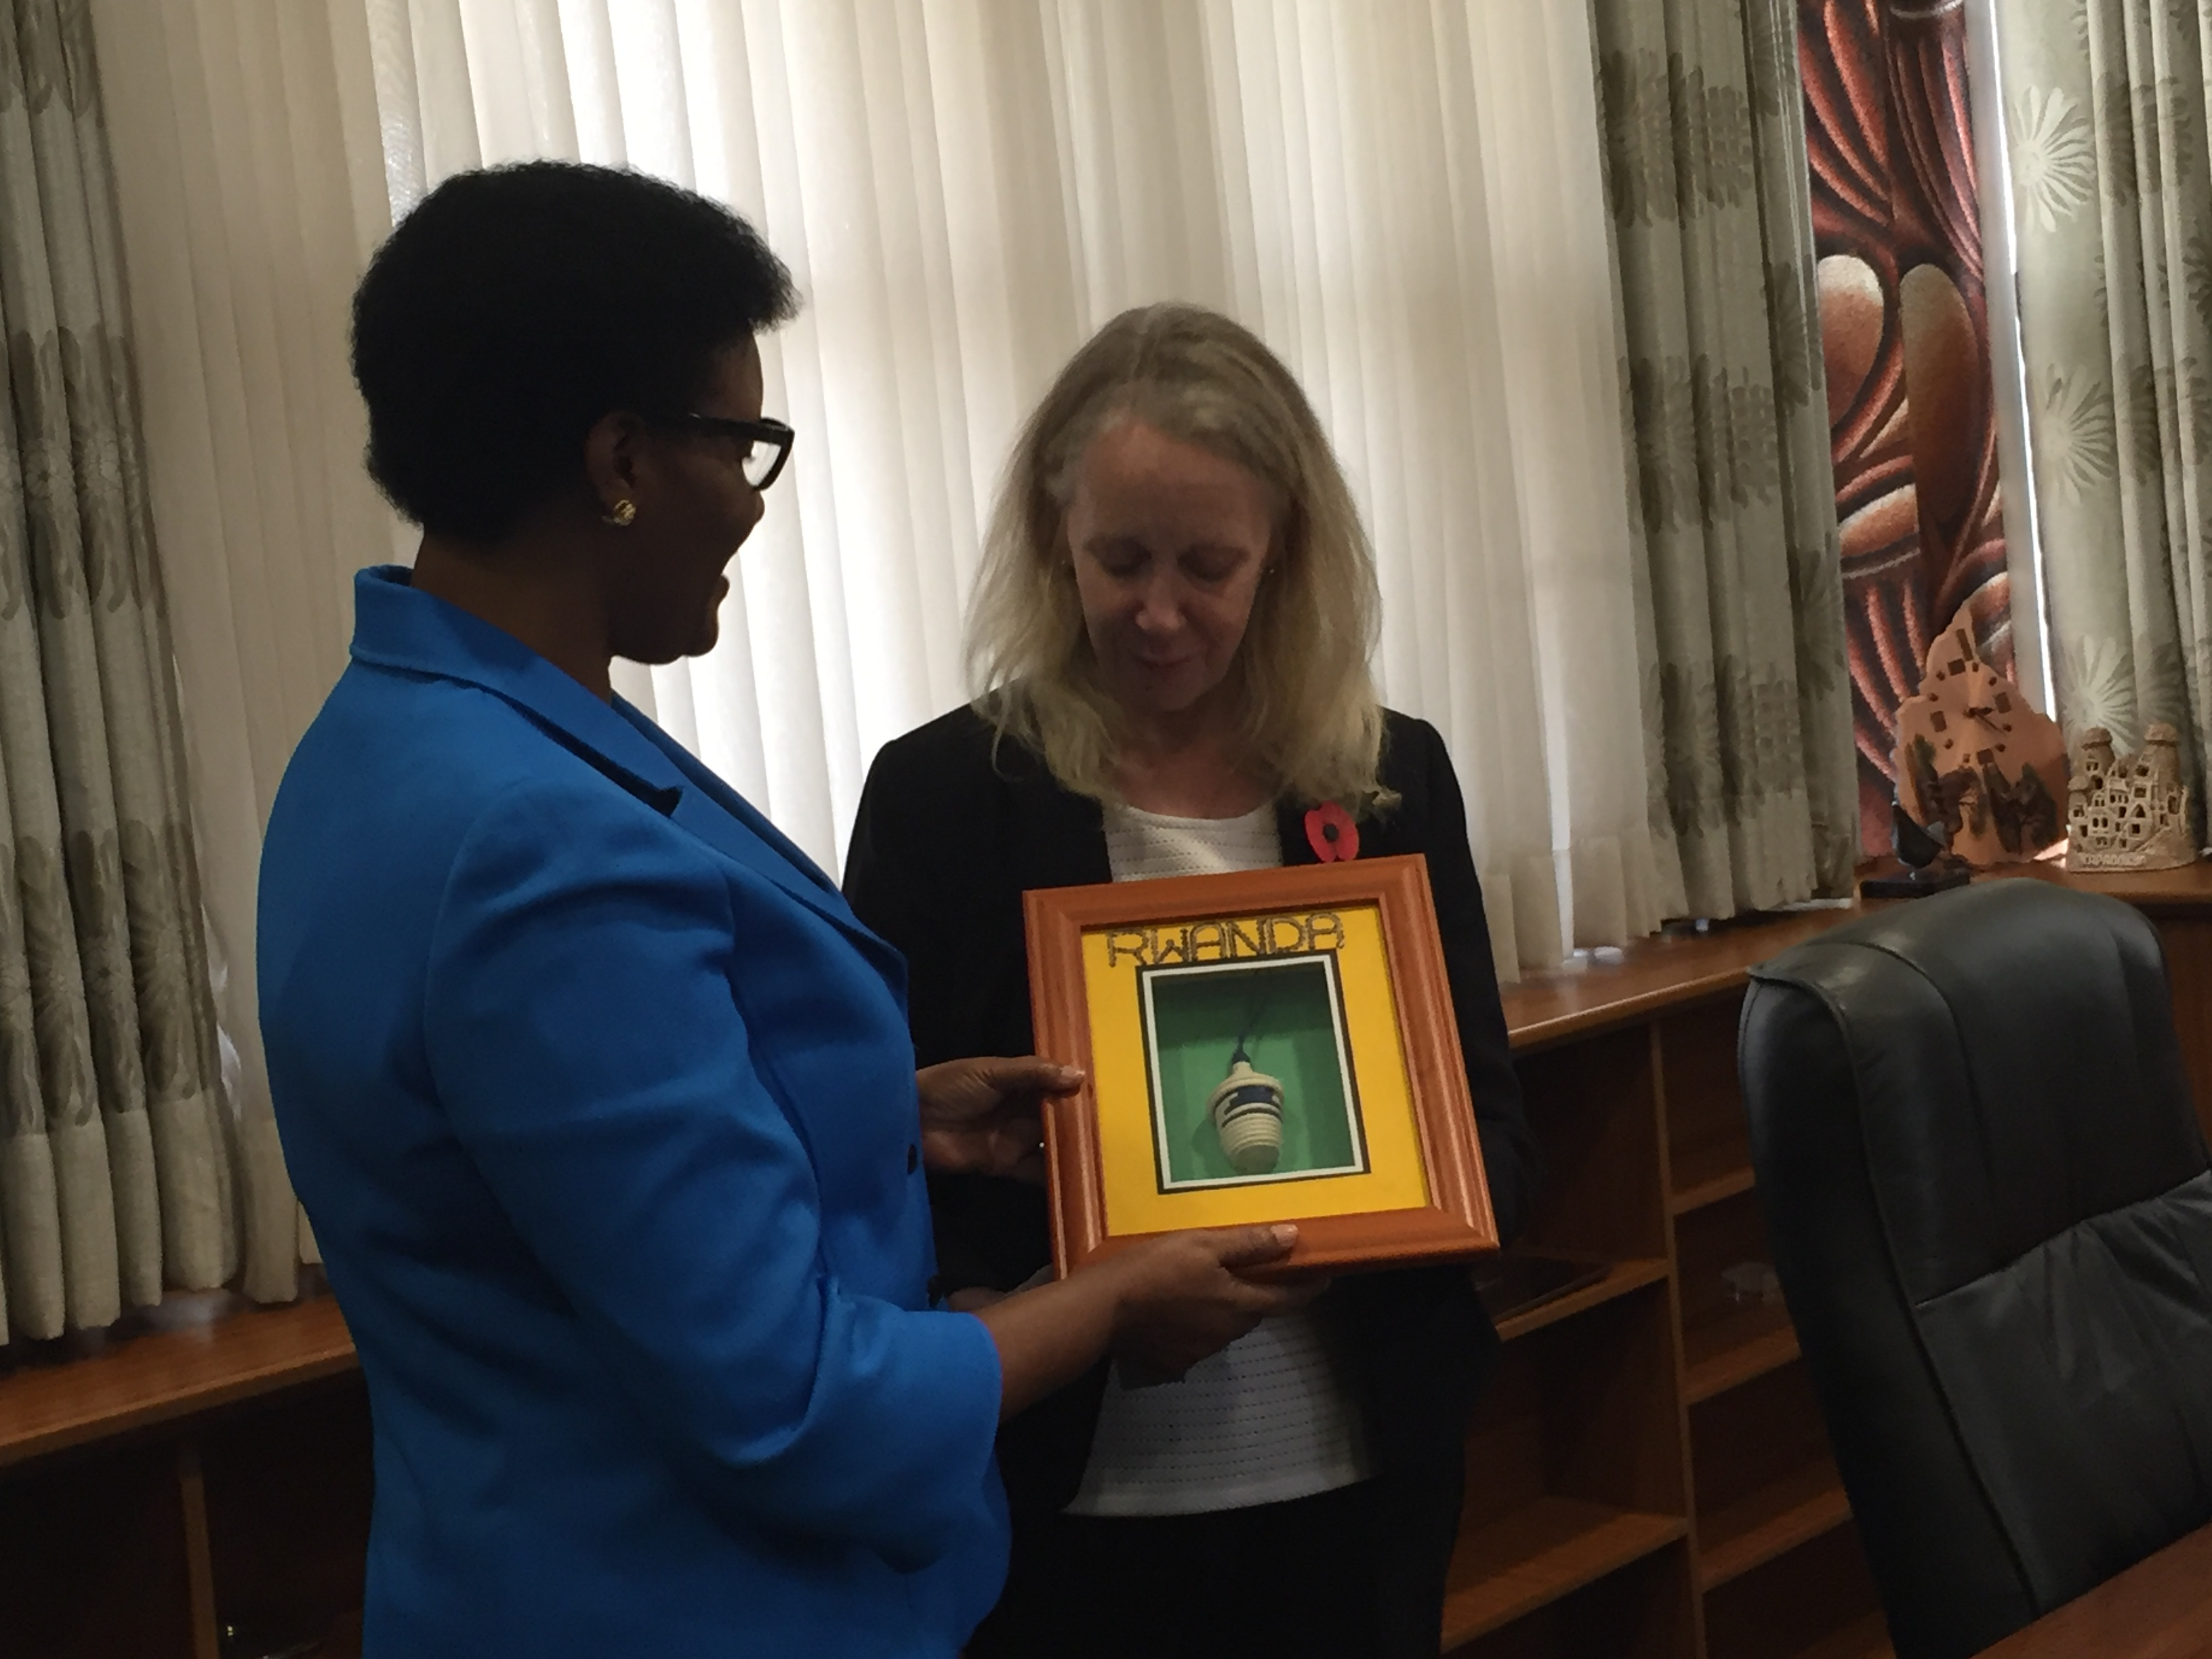 We were welcomed to the Parliament of Rwanda by HE Donatille Mukabalisa, Speaker of the Chamber of Deputies